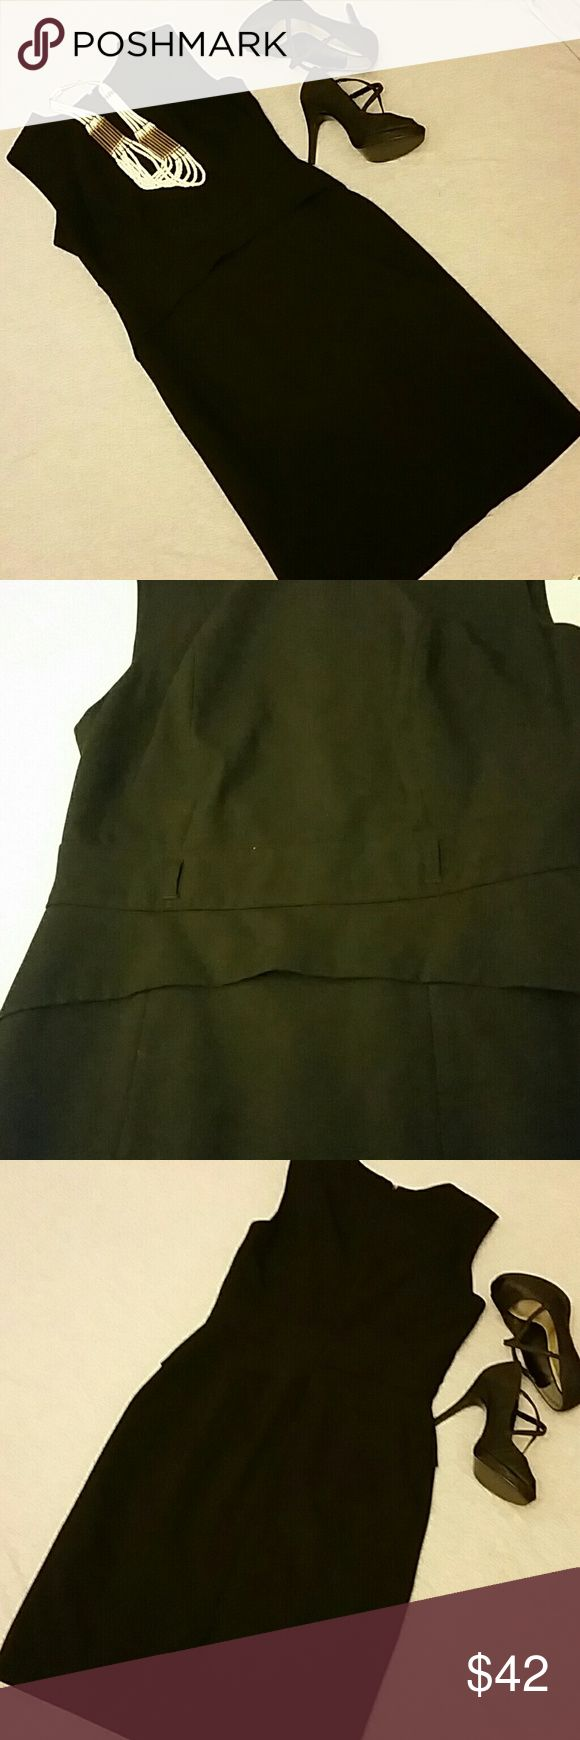 Calvin Klein LBD size 4 Dress is sized as a 6 but fits like a 4. Waist detail and loops for belt if desired. Classy for work or after work drinks.  Measures 39.5 inches from shoulder to bottom hem, 16 inches armpit to armpit. Calvin Klein Dresses Midi